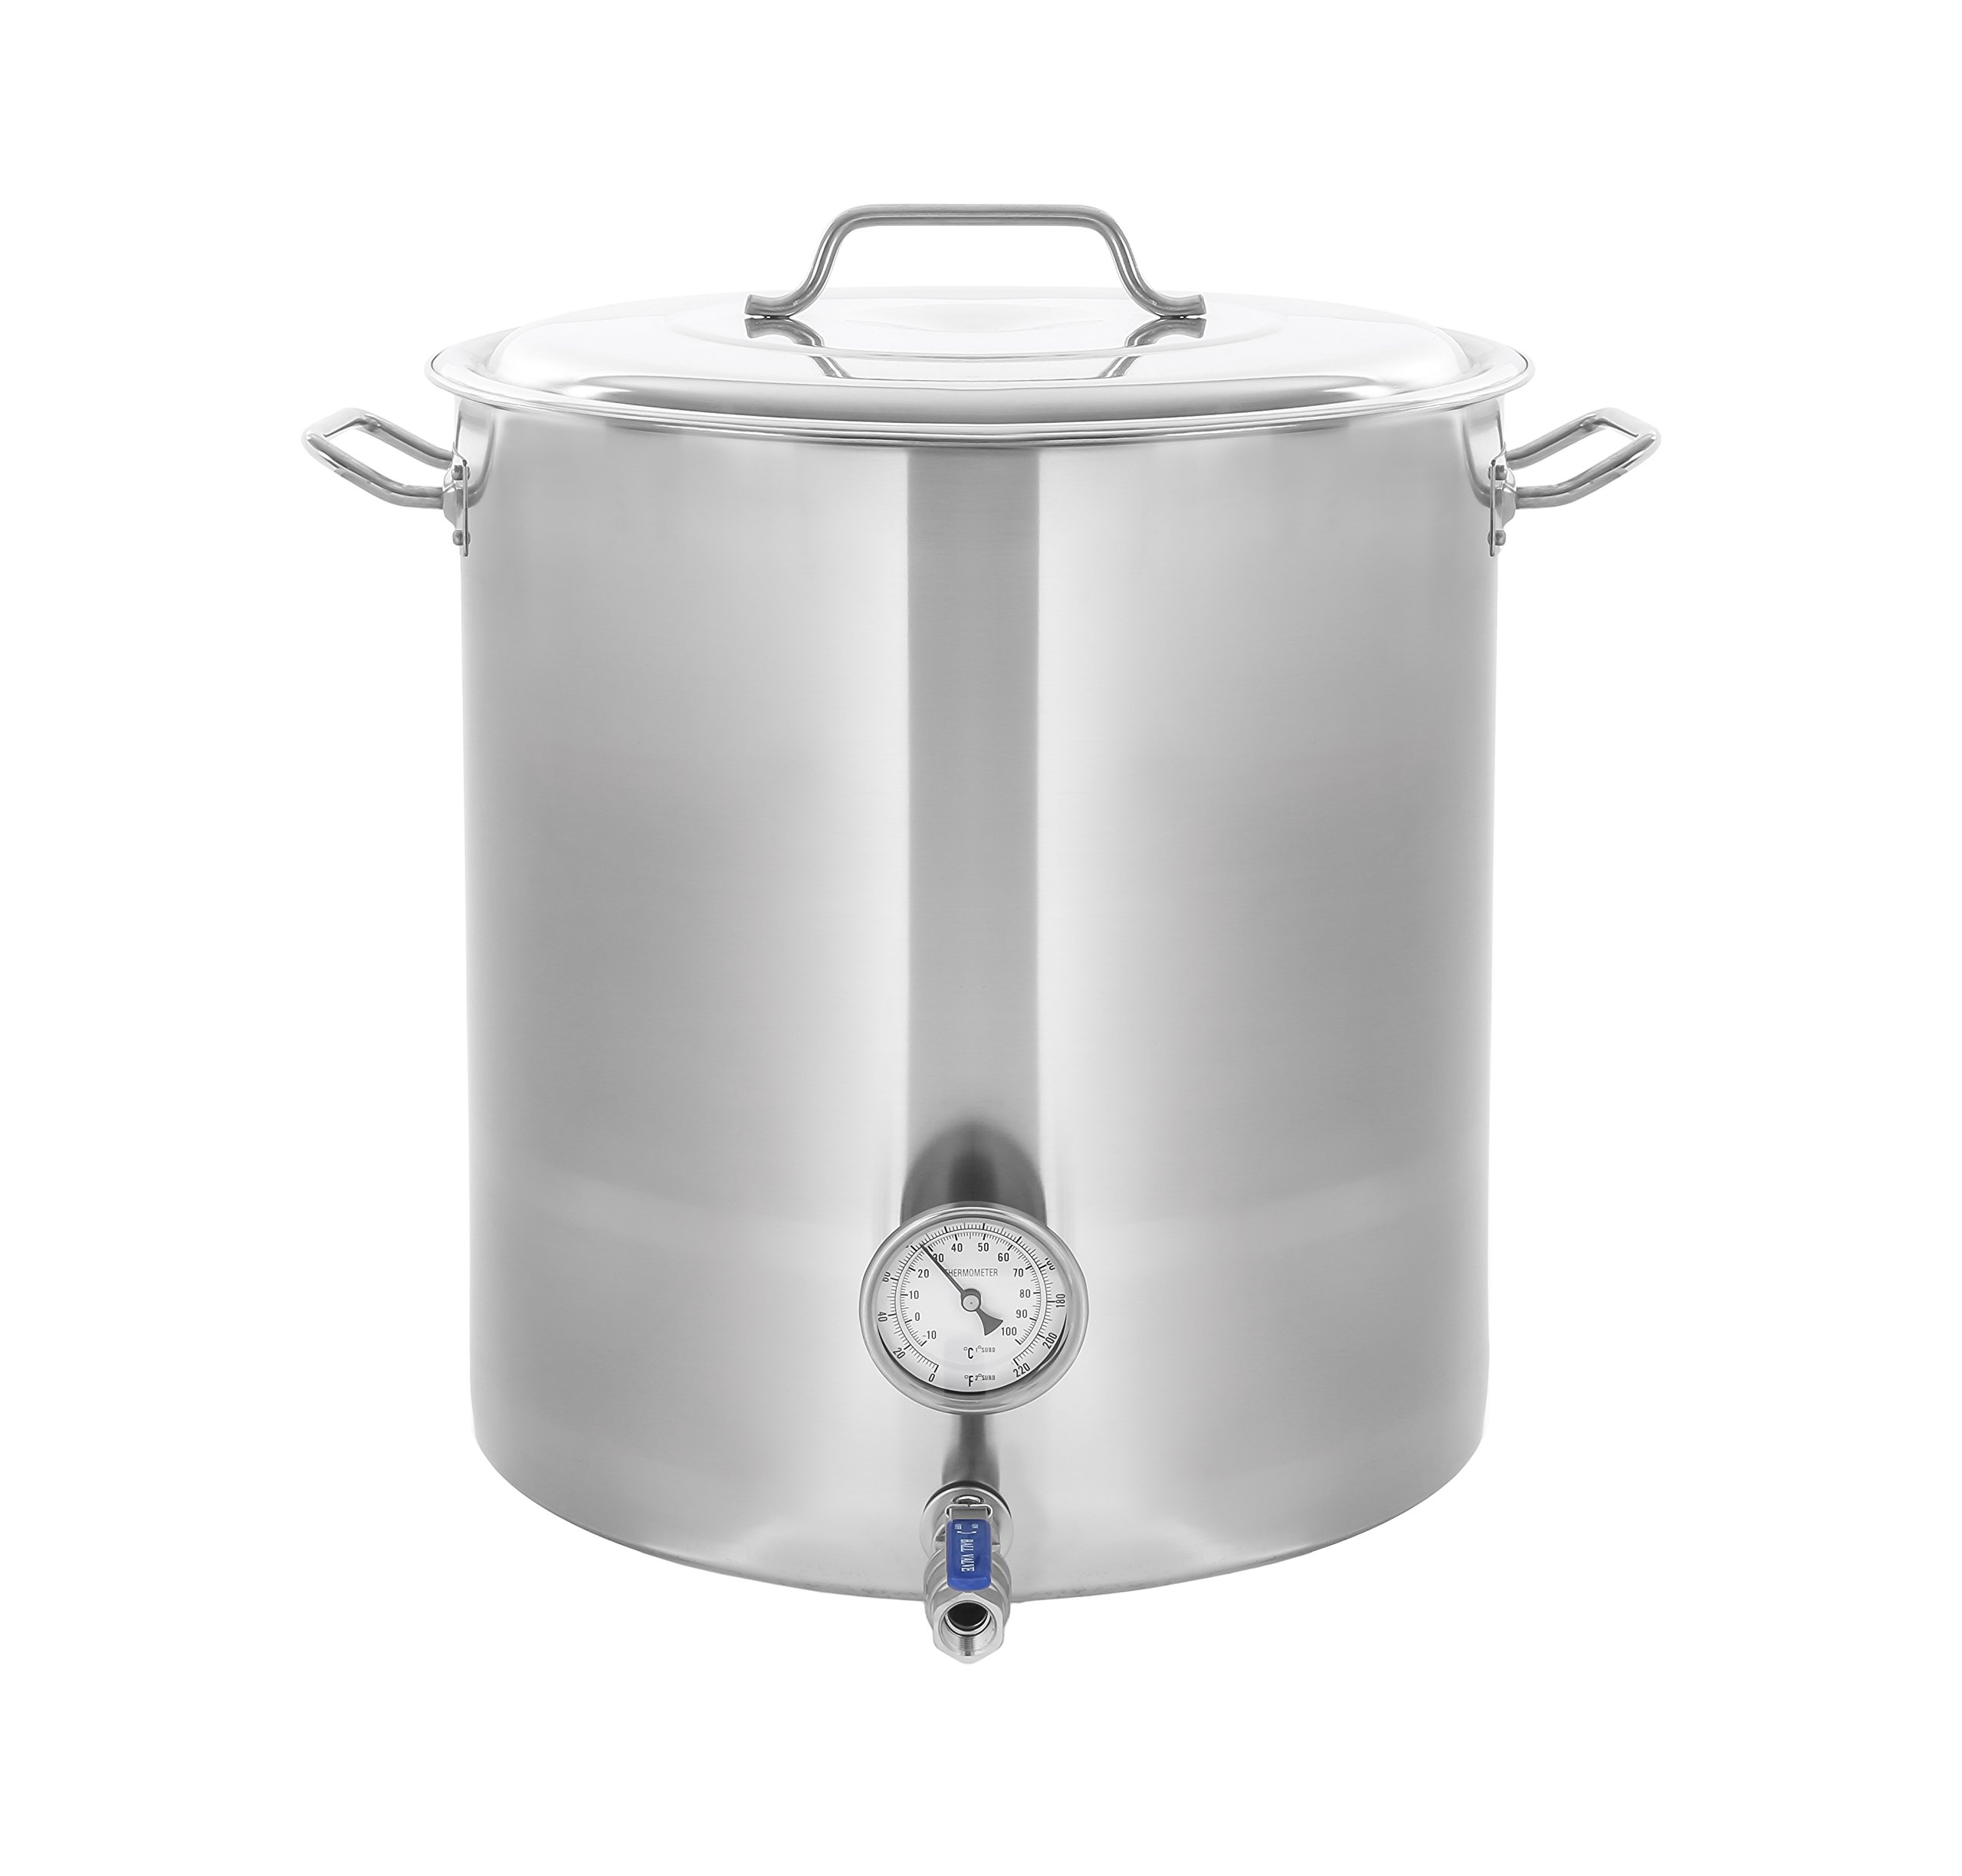 CONCORD Stainless Steel Home Brew Kettle Stock Pot (Weldless Fittings) (30 QT/7.5 Gal) by Concord Cookware